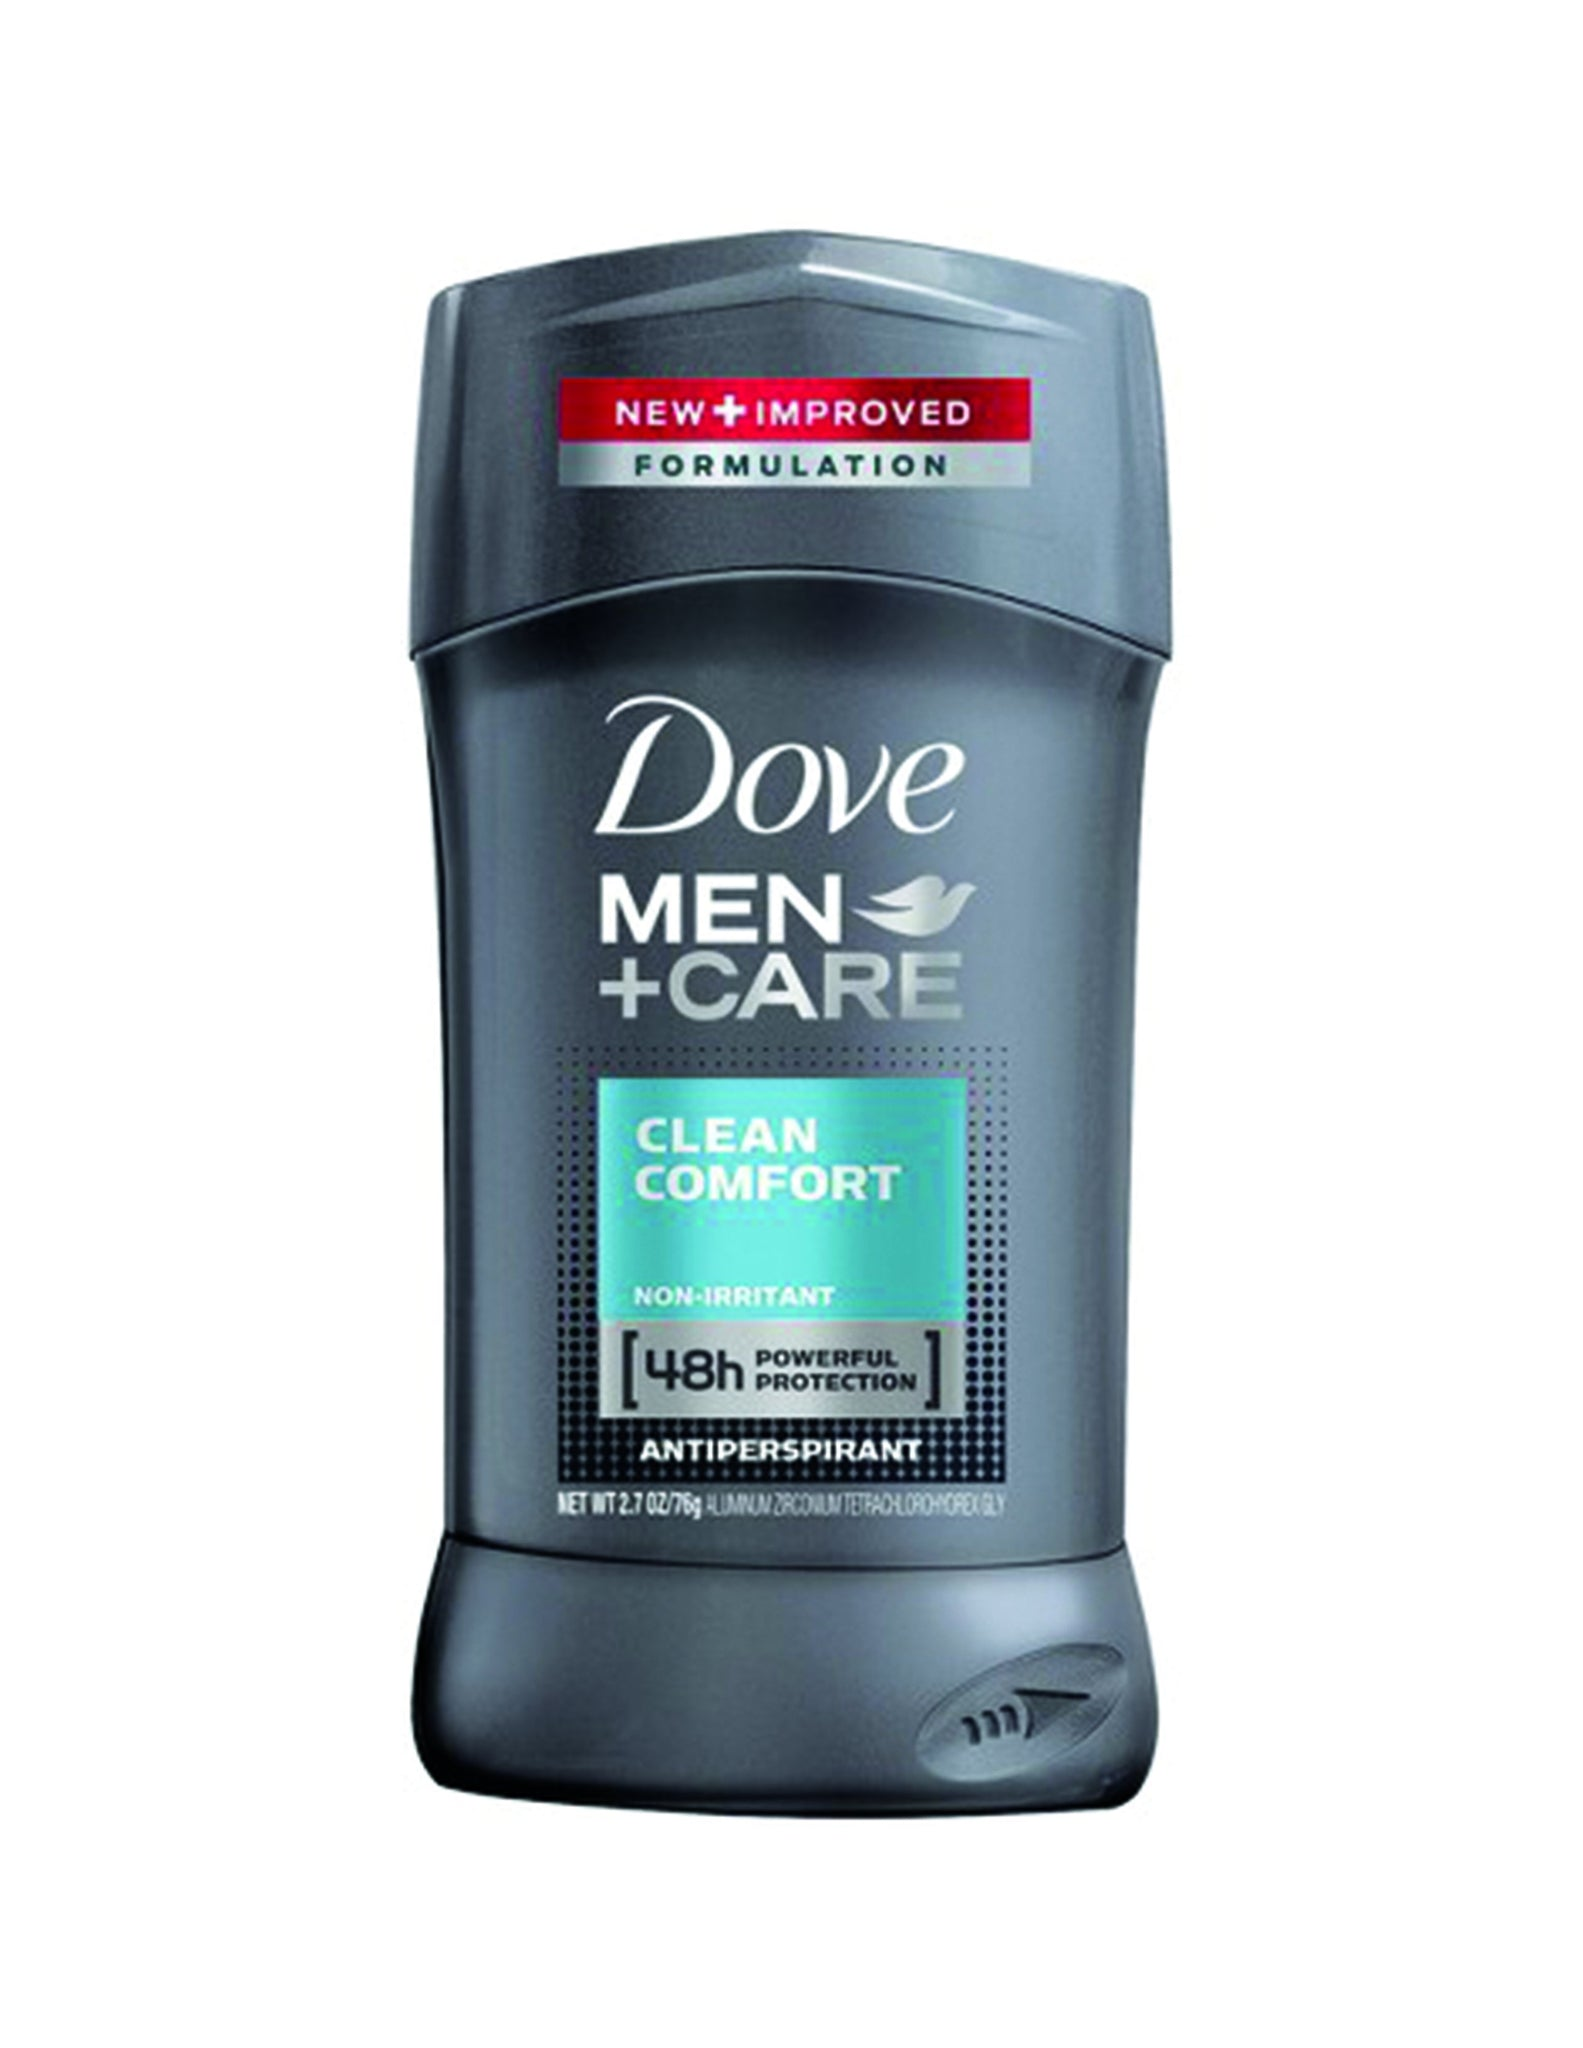 bel>Dove Deodorant, Men's